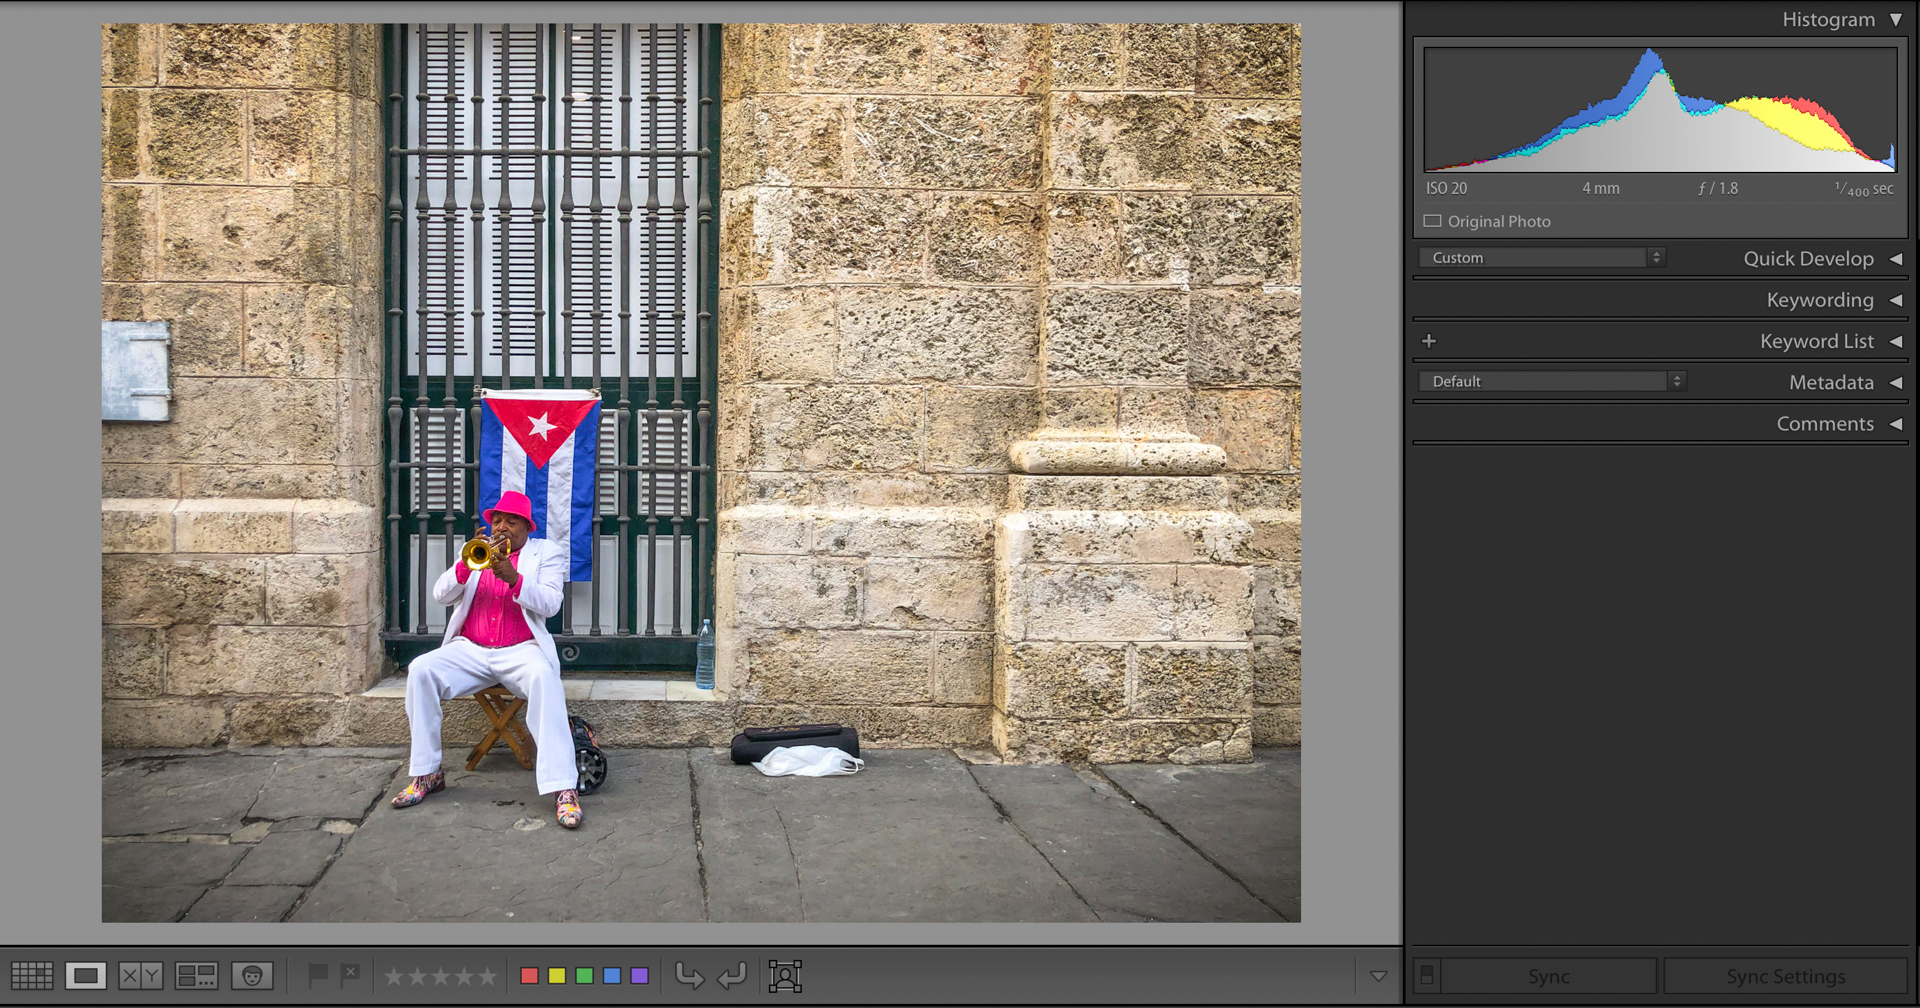 Image of a busker in Cuba next to the histogram of the image